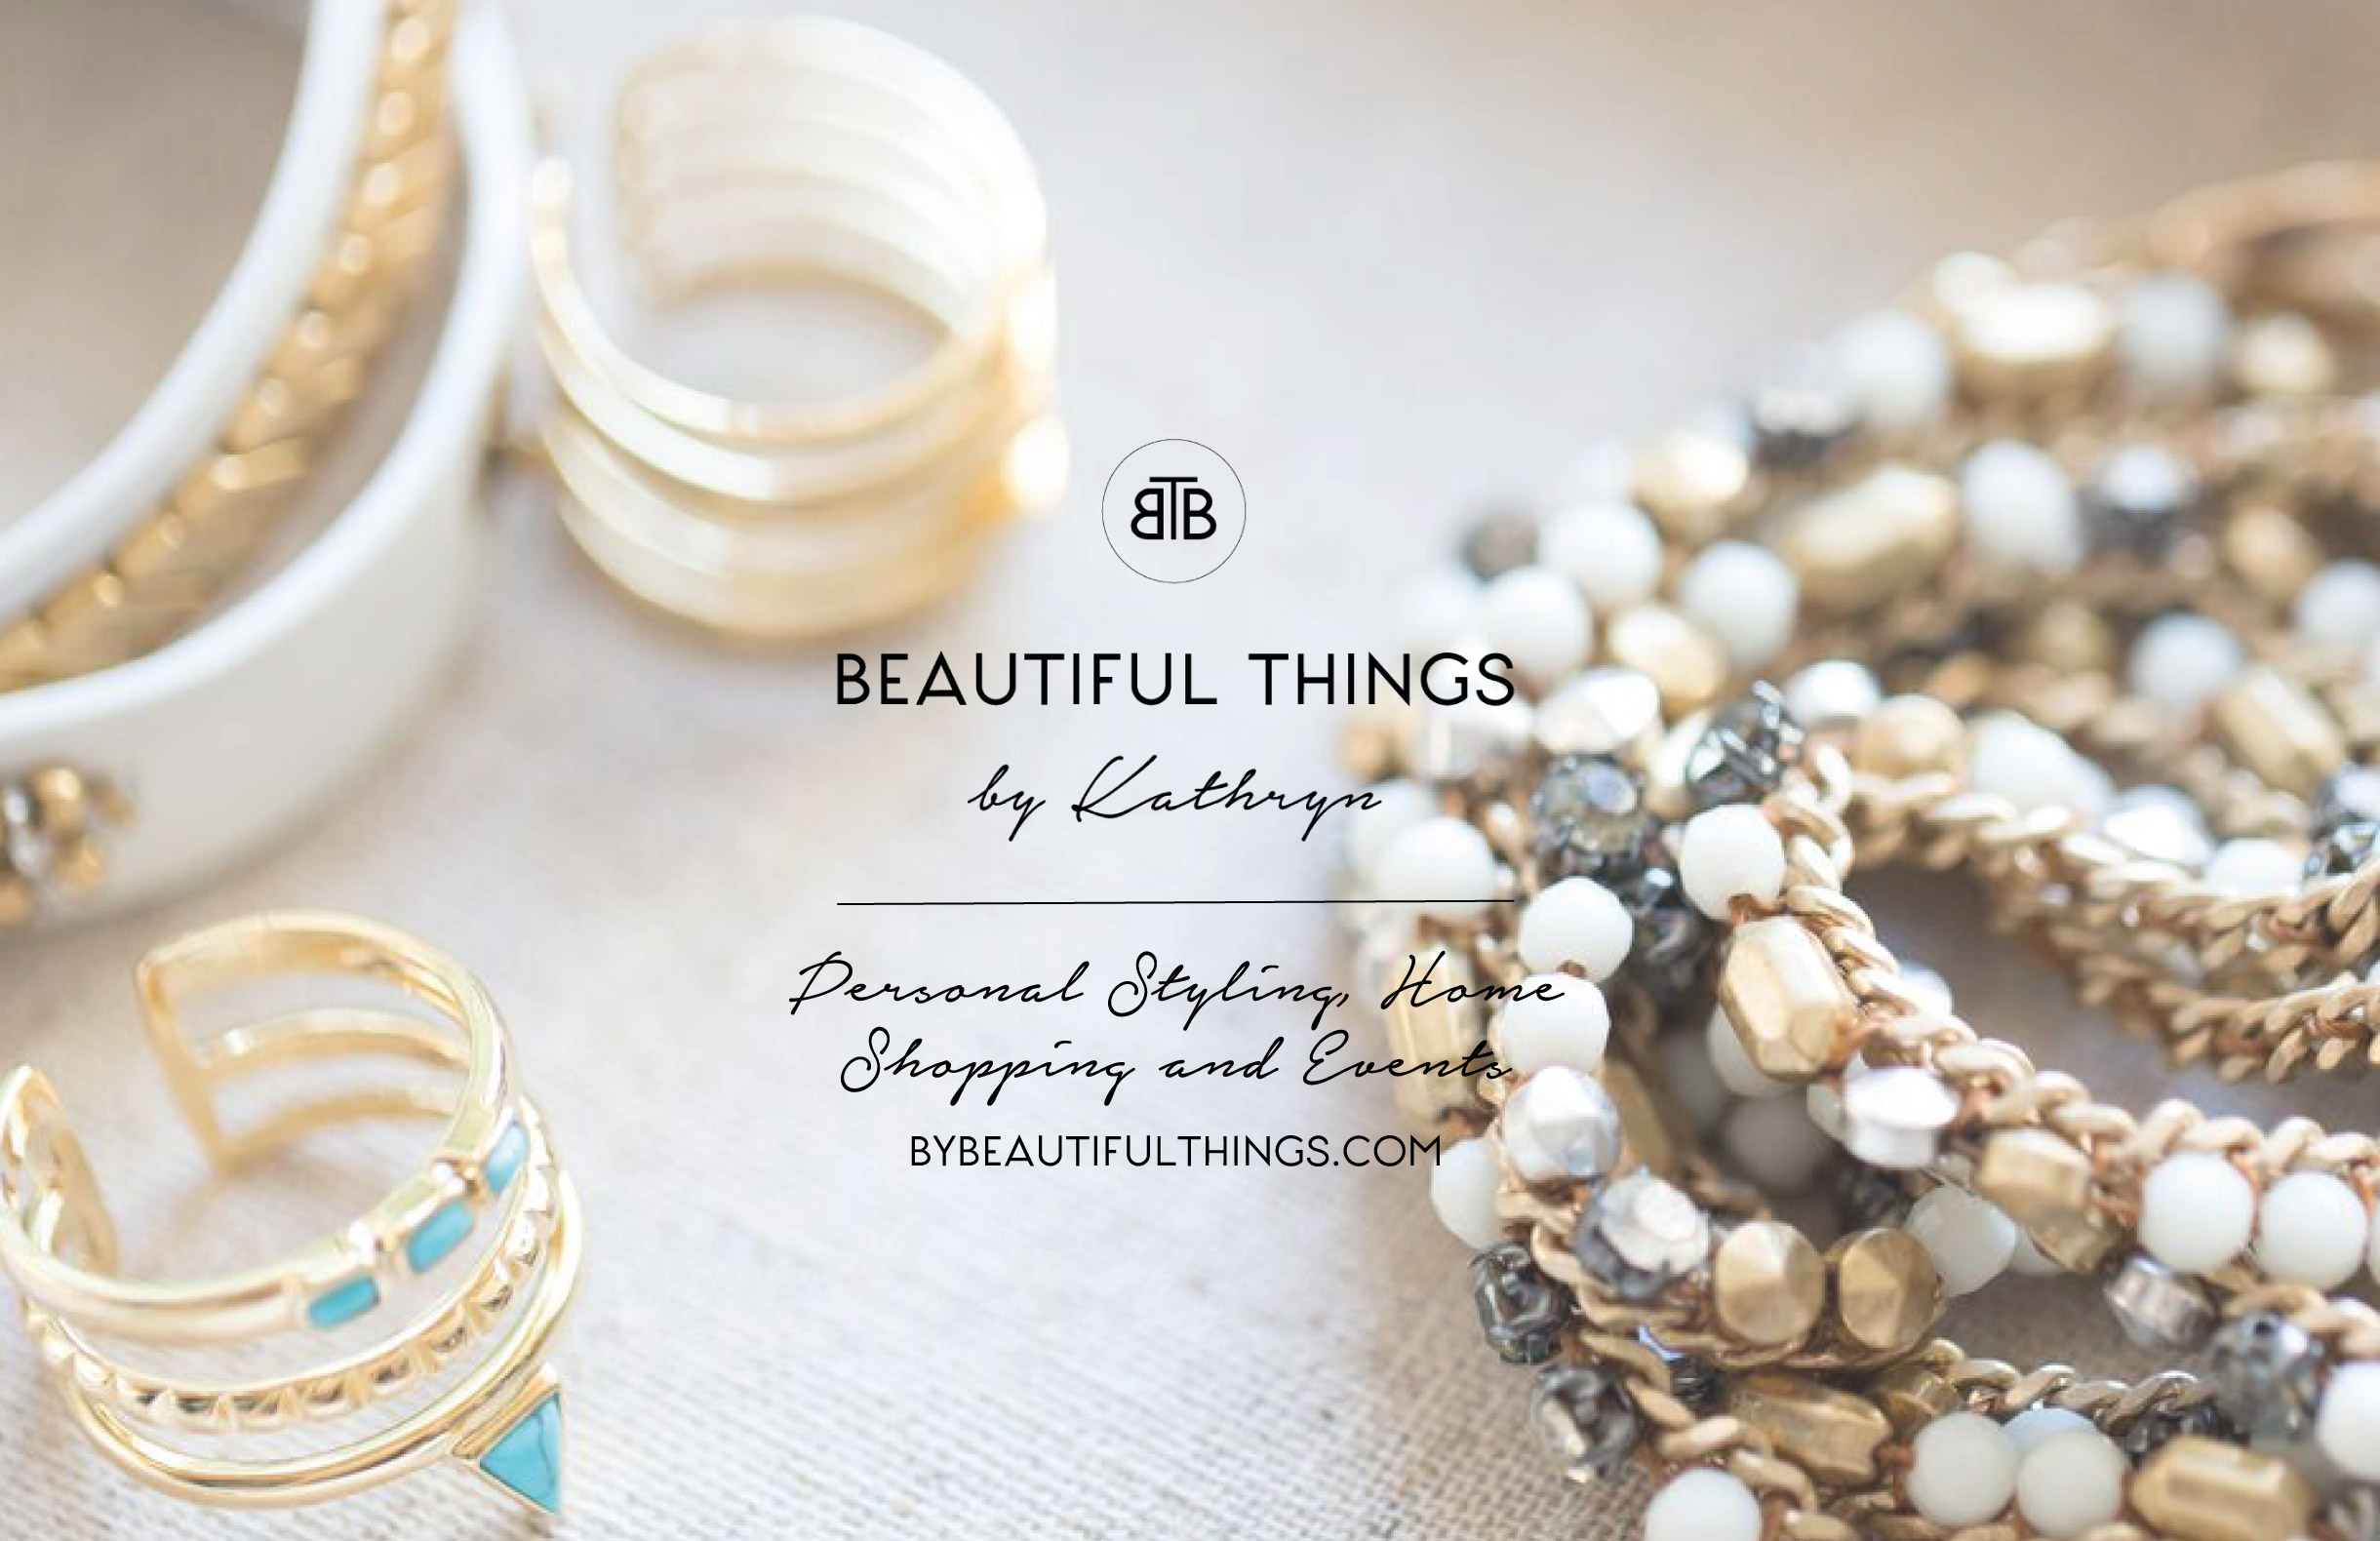 Quints Design co - Beautiful Things by Kathryn Business Branding